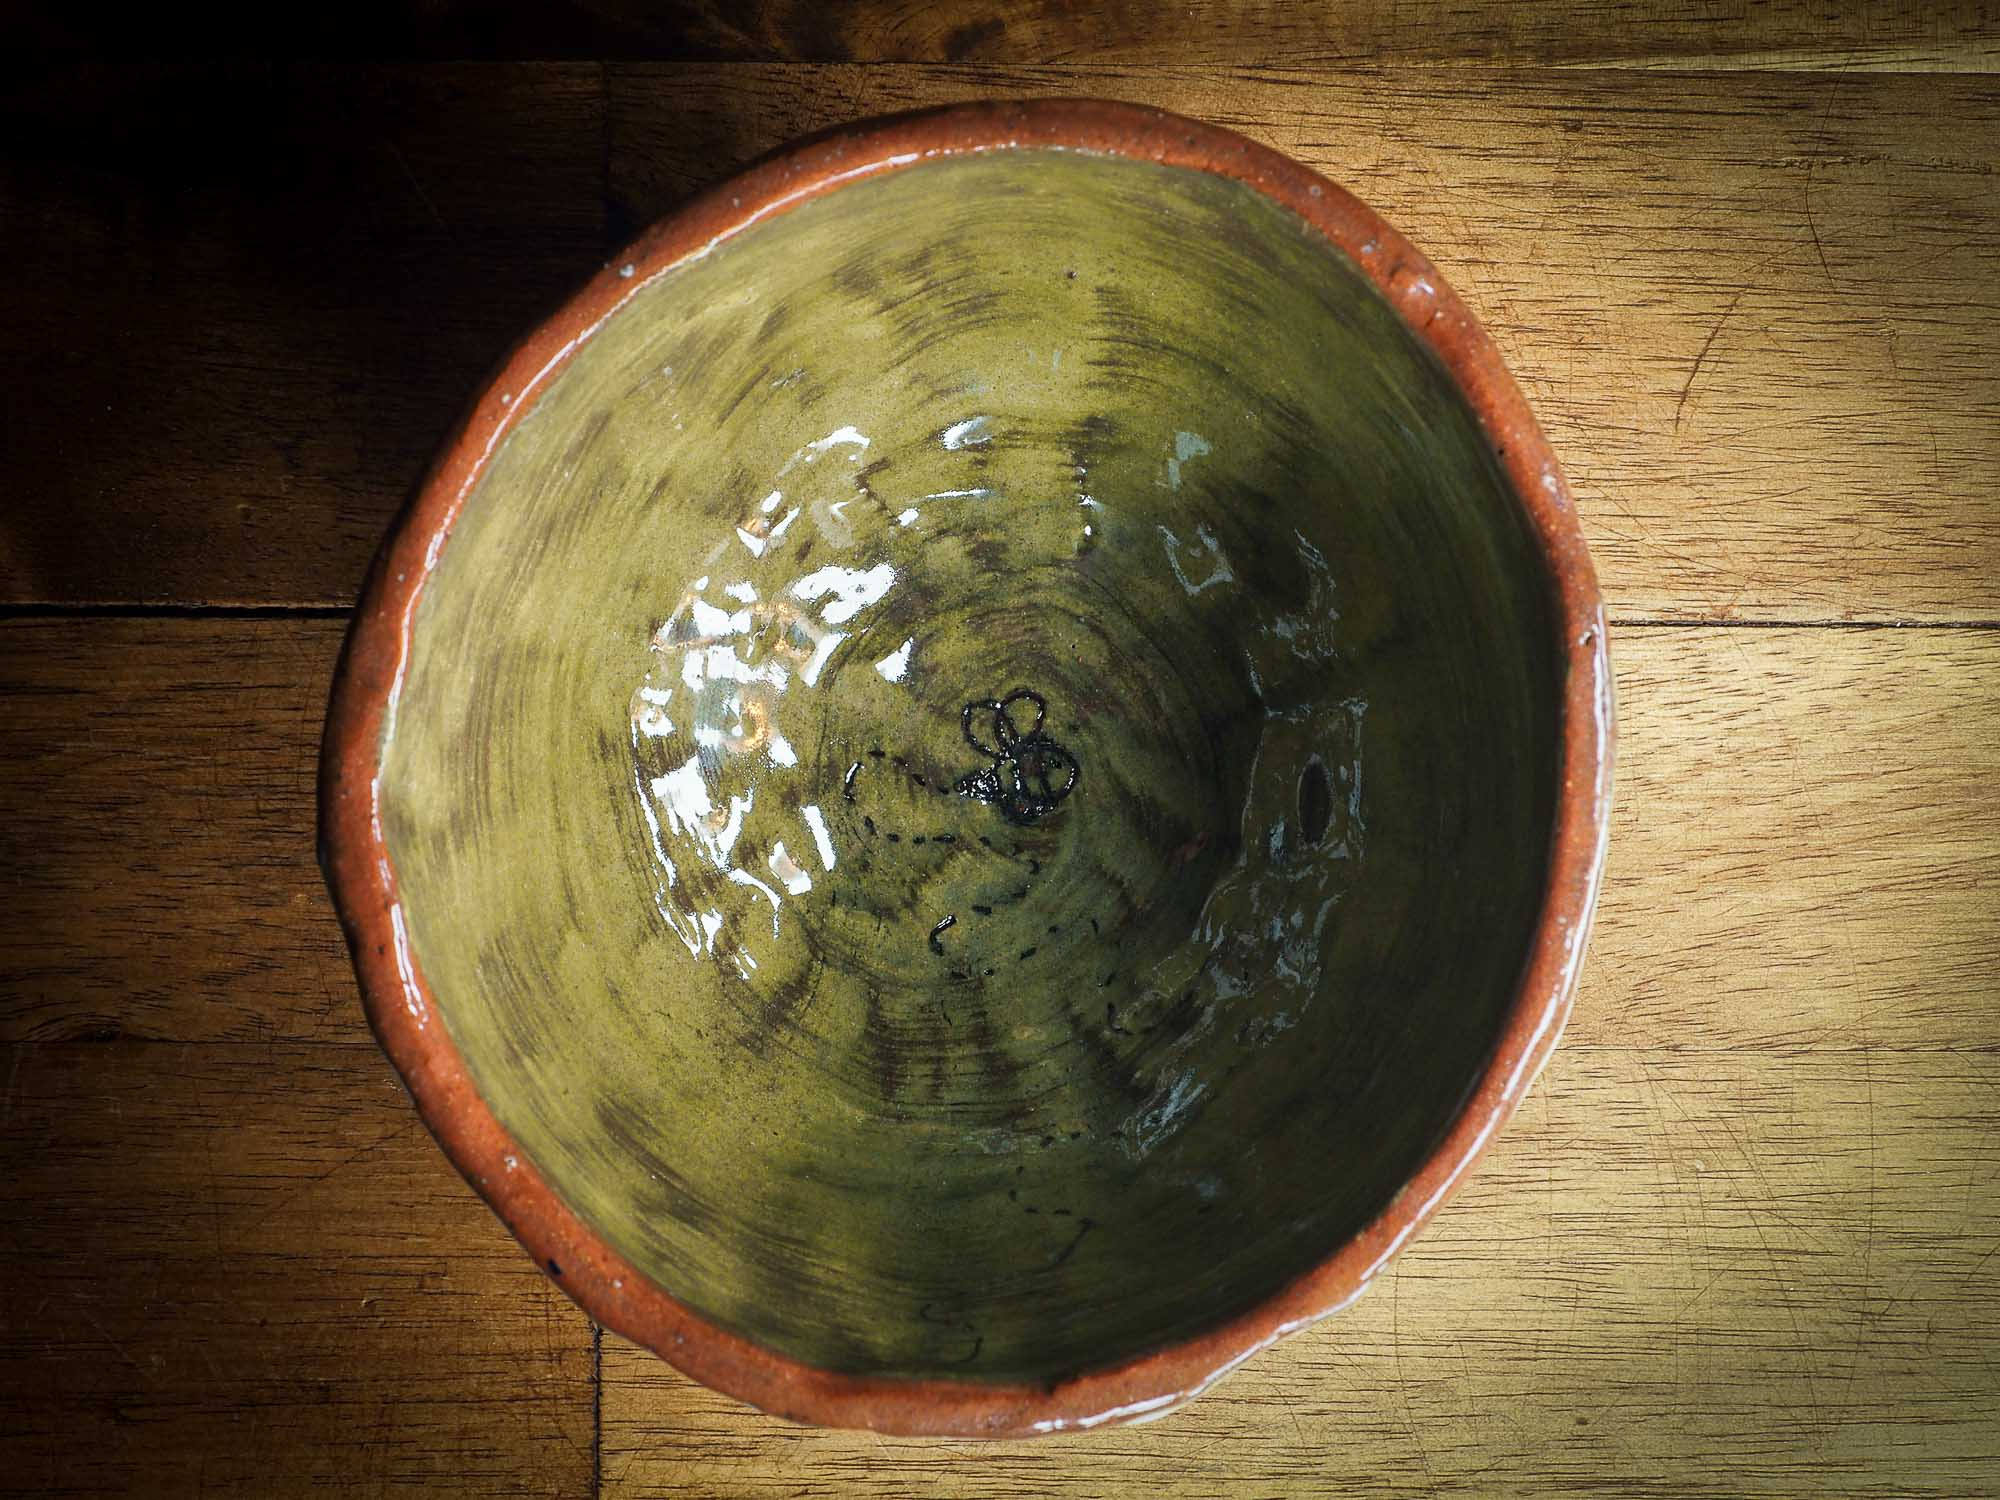 An original Idania Salcido Danita Art pinched ceramic cat pet food bowl. Handmade from locally foraged clay, this glazed ceramics one of a kind artwork is perfect for any kitchen plate and bowls unique collection. Thumbprints and  intentionally irregular shape give the bowl a cozy, warmly familiar feel when you pick it